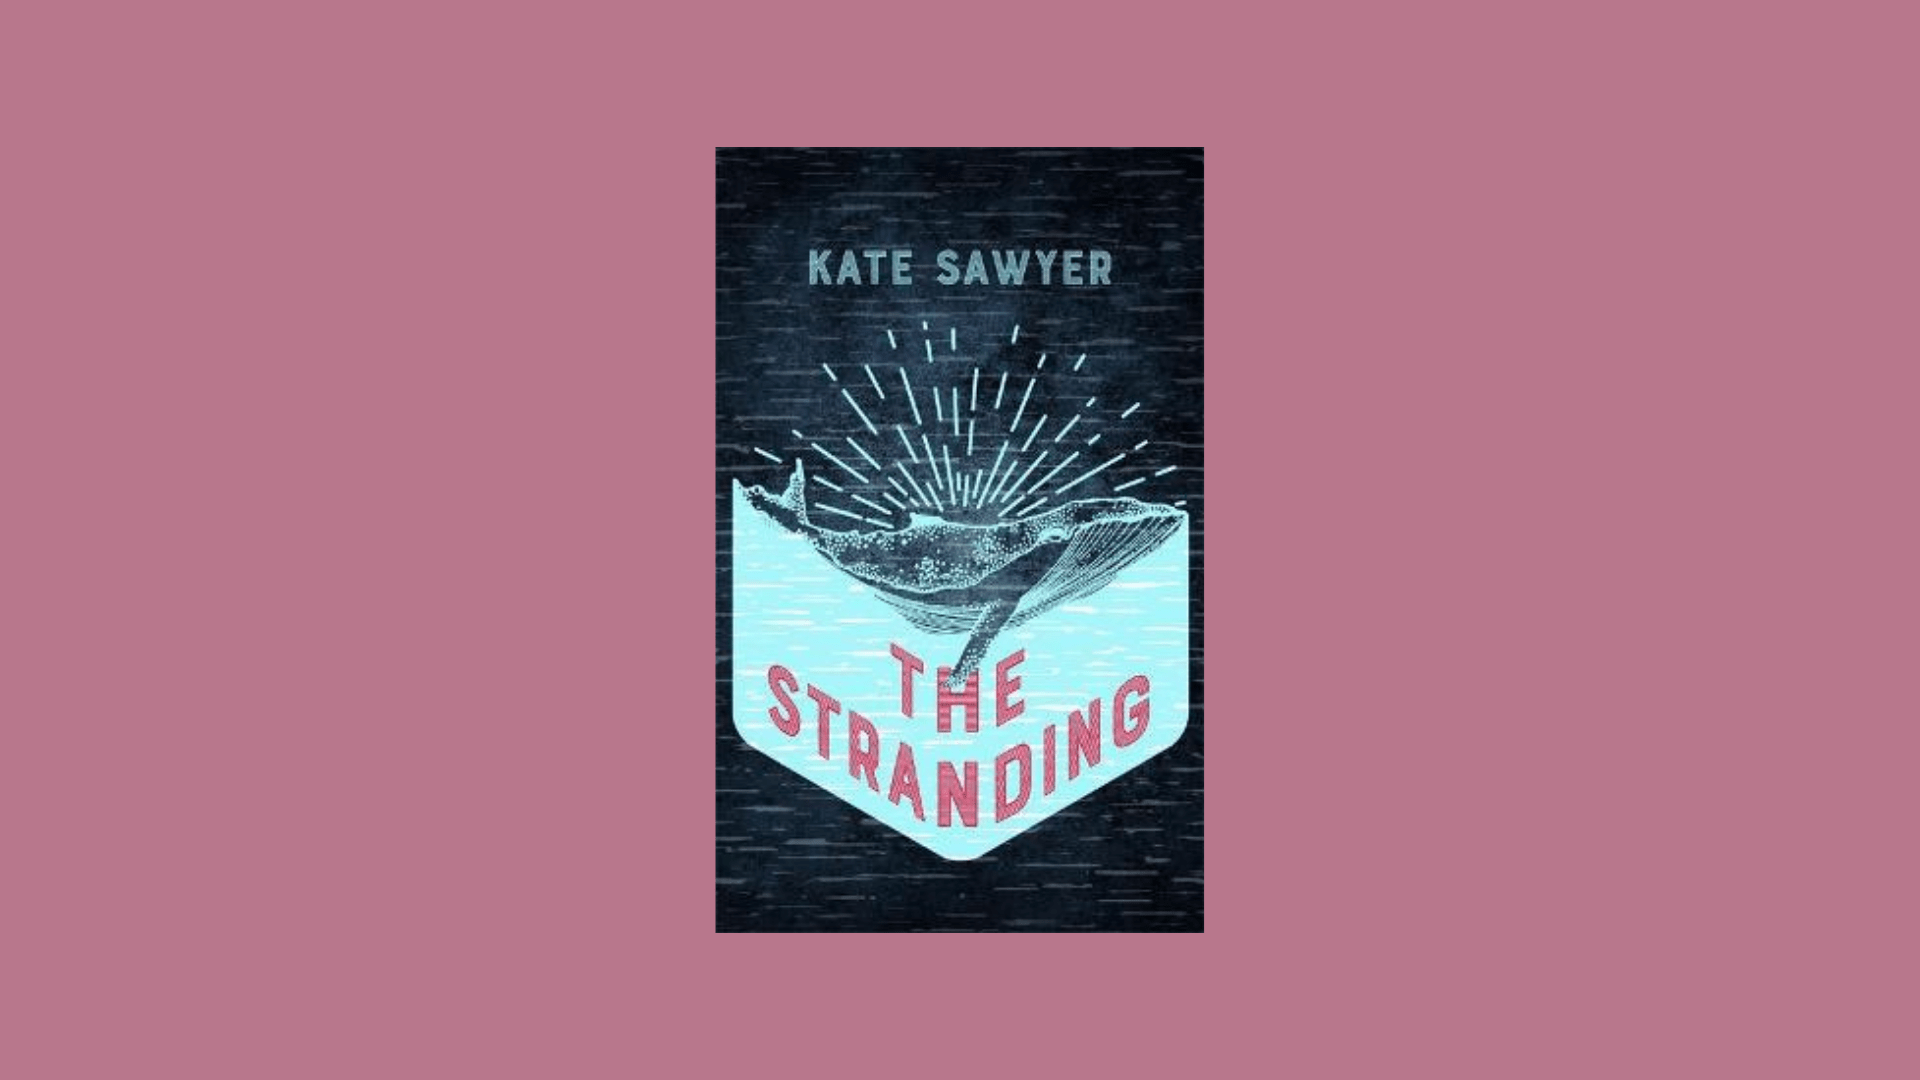 The cover of The Stranding by Kate Sawyer against a dusky pink background